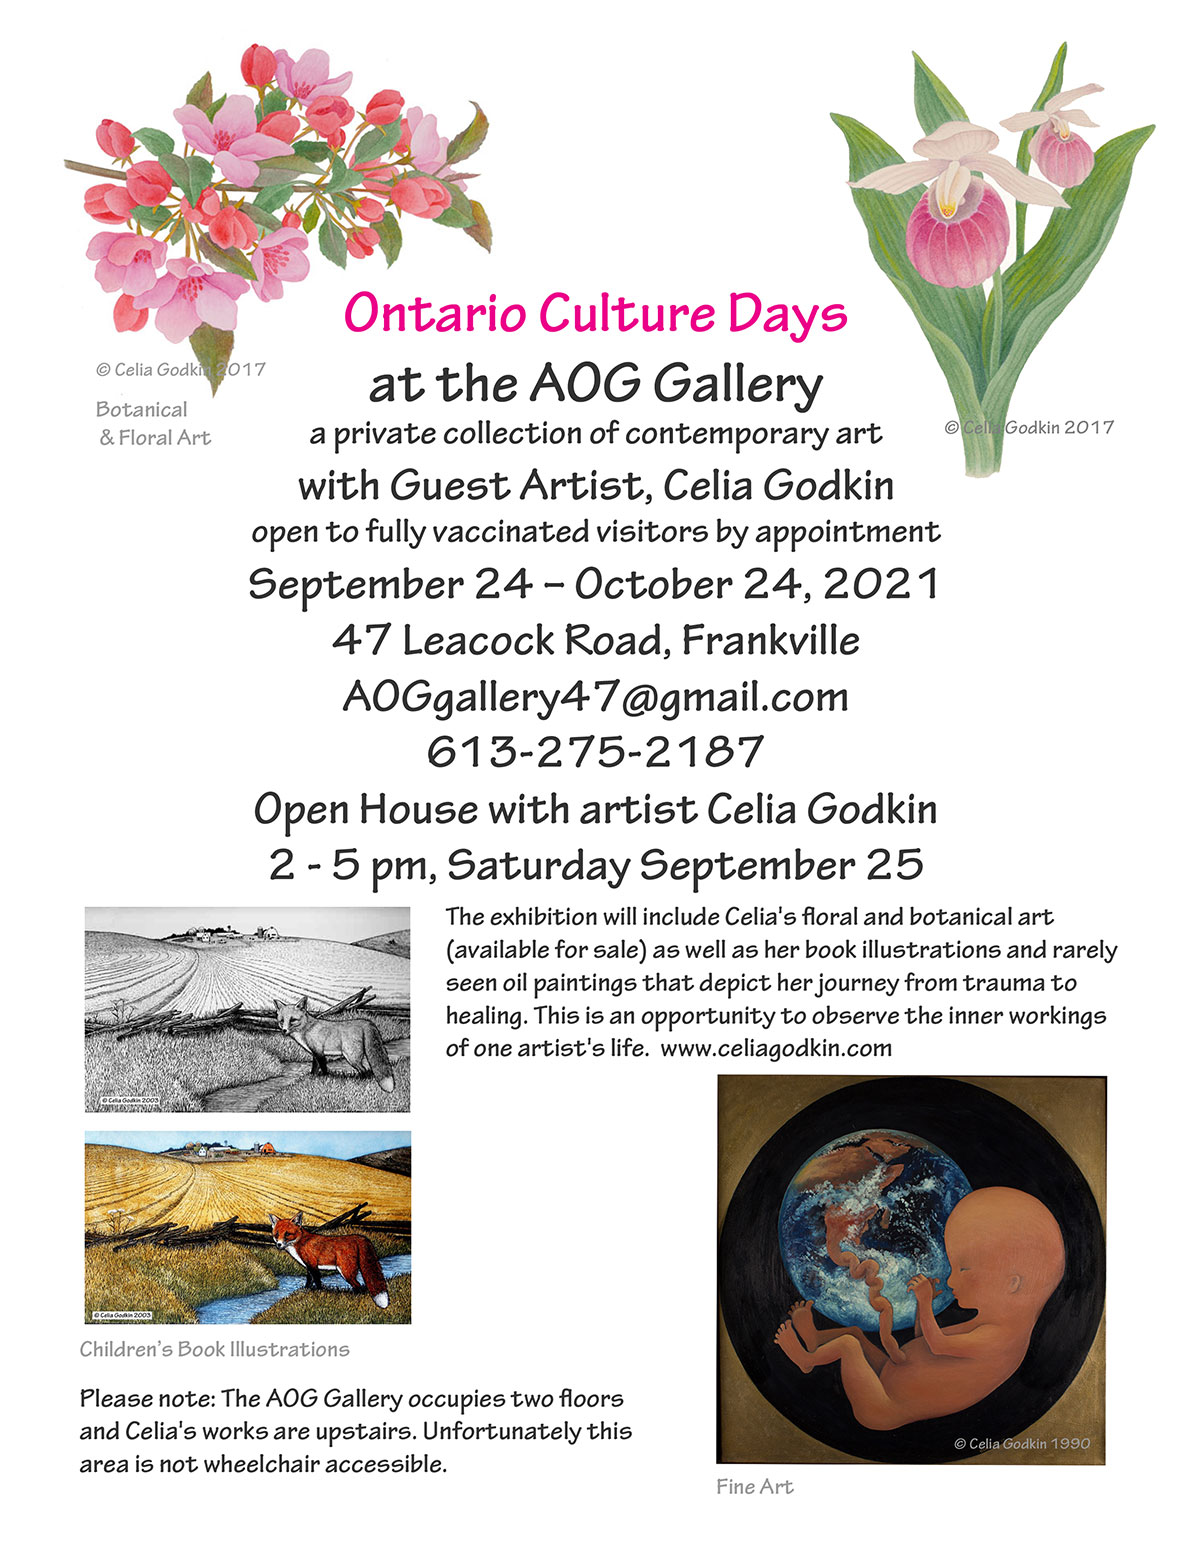 Ontario Culture Days, AOG Gallery